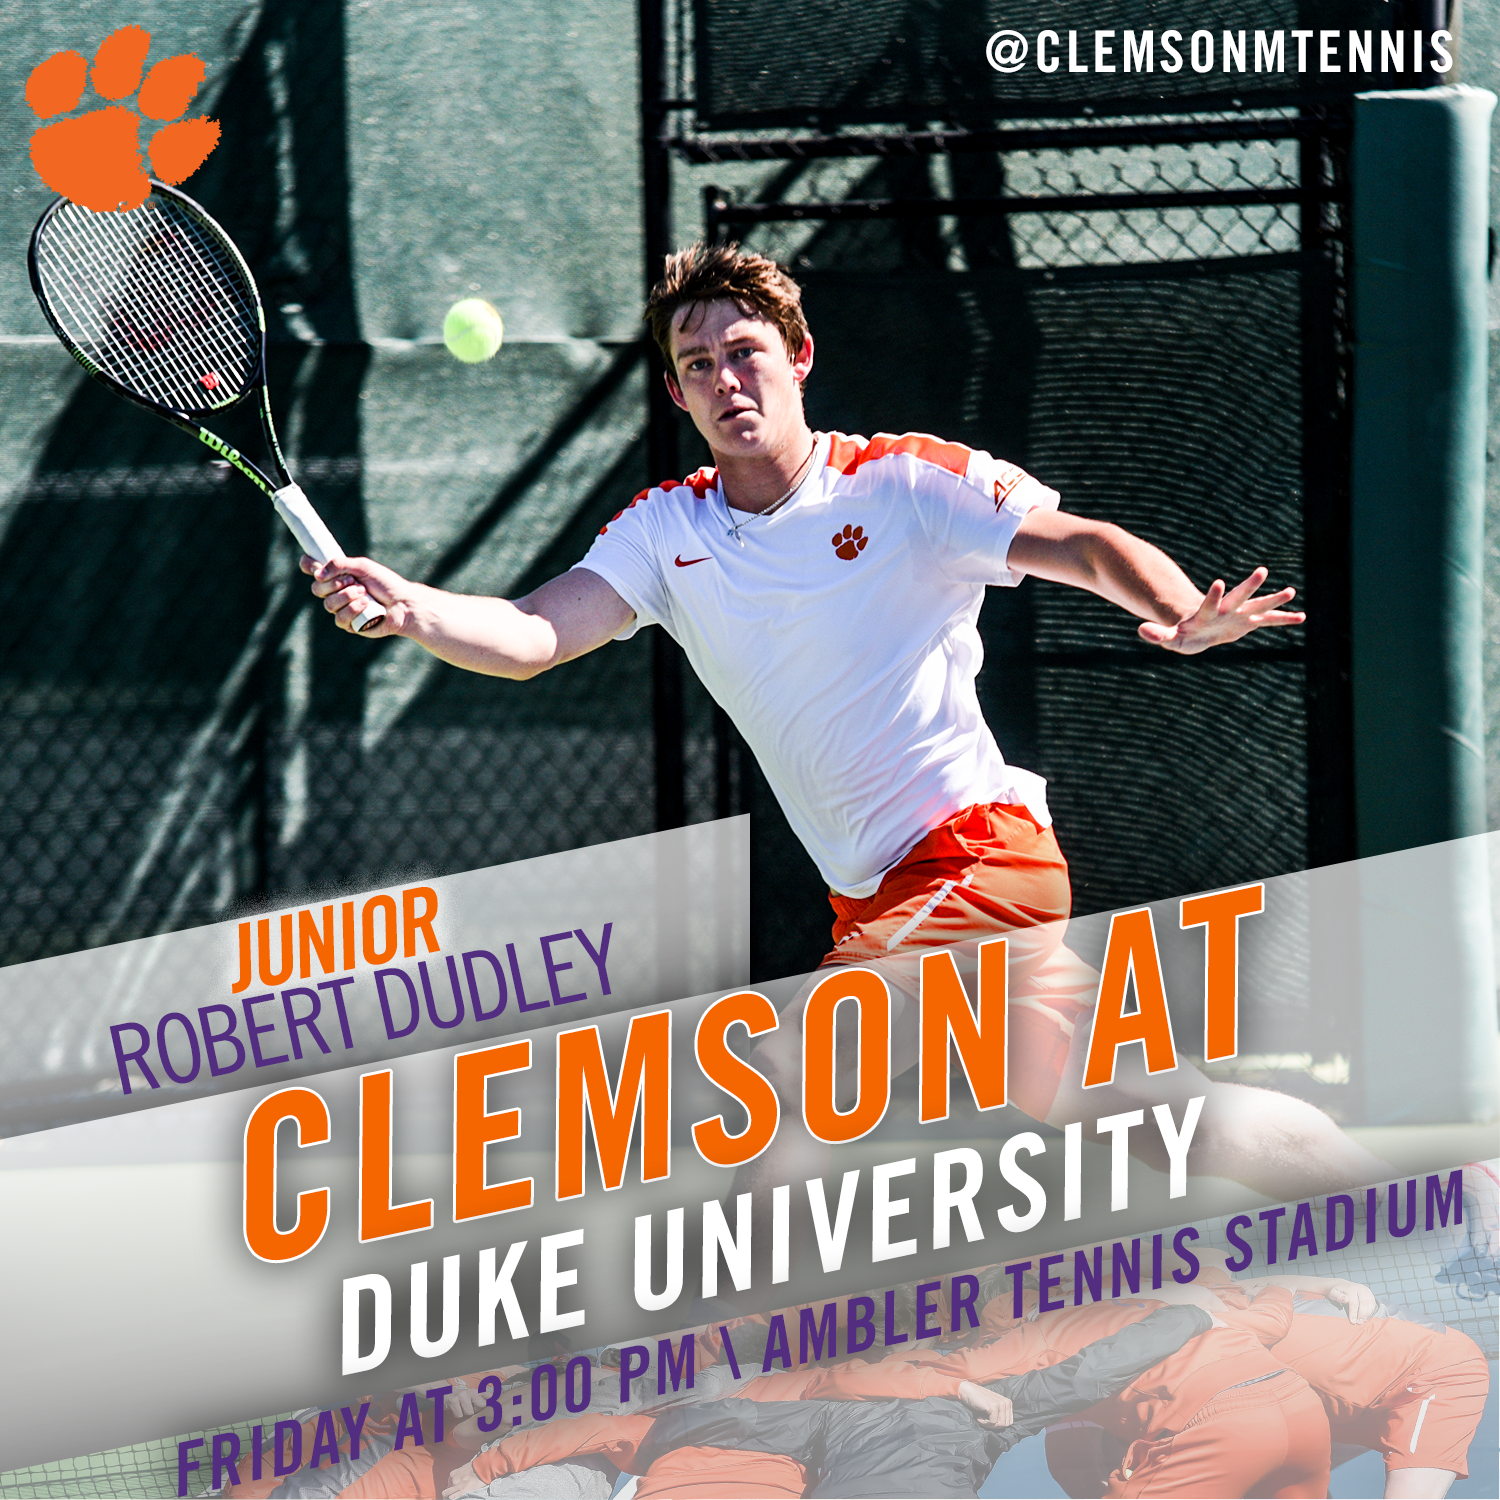 Tigers Travel to Duke for Final ACC Match Friday